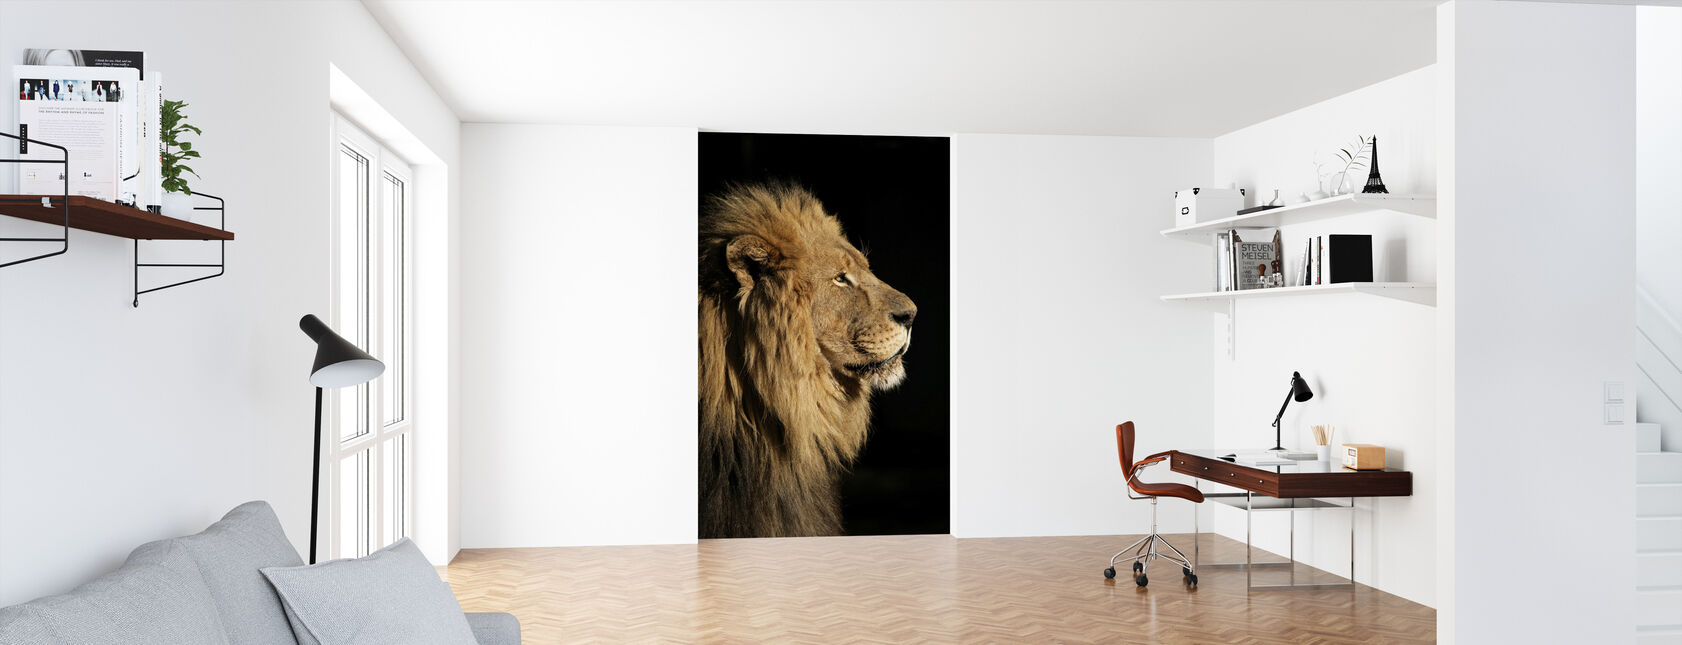 Big Male African Lion - Wallpaper - Office